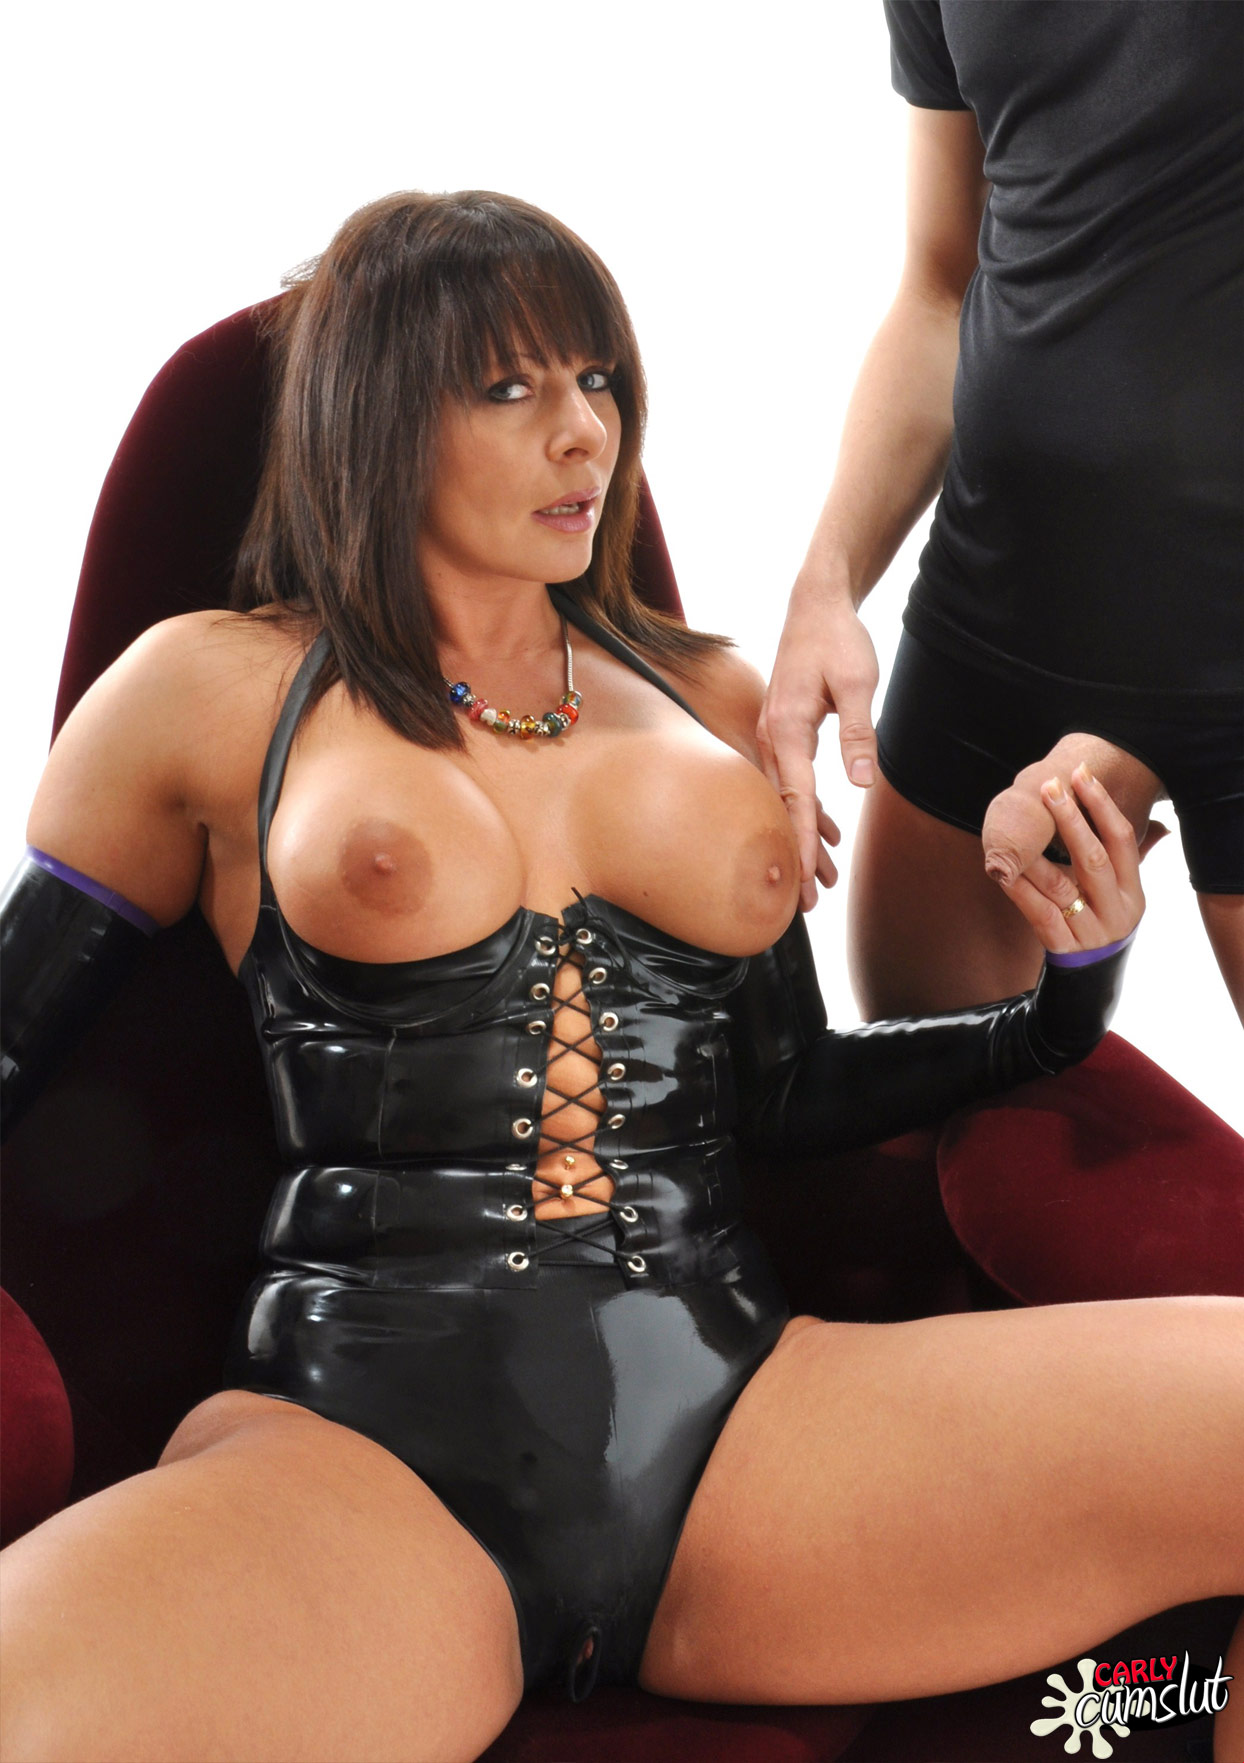 Carly Cum Slut This Crotchless PVC Outfit Was Perfect For ...